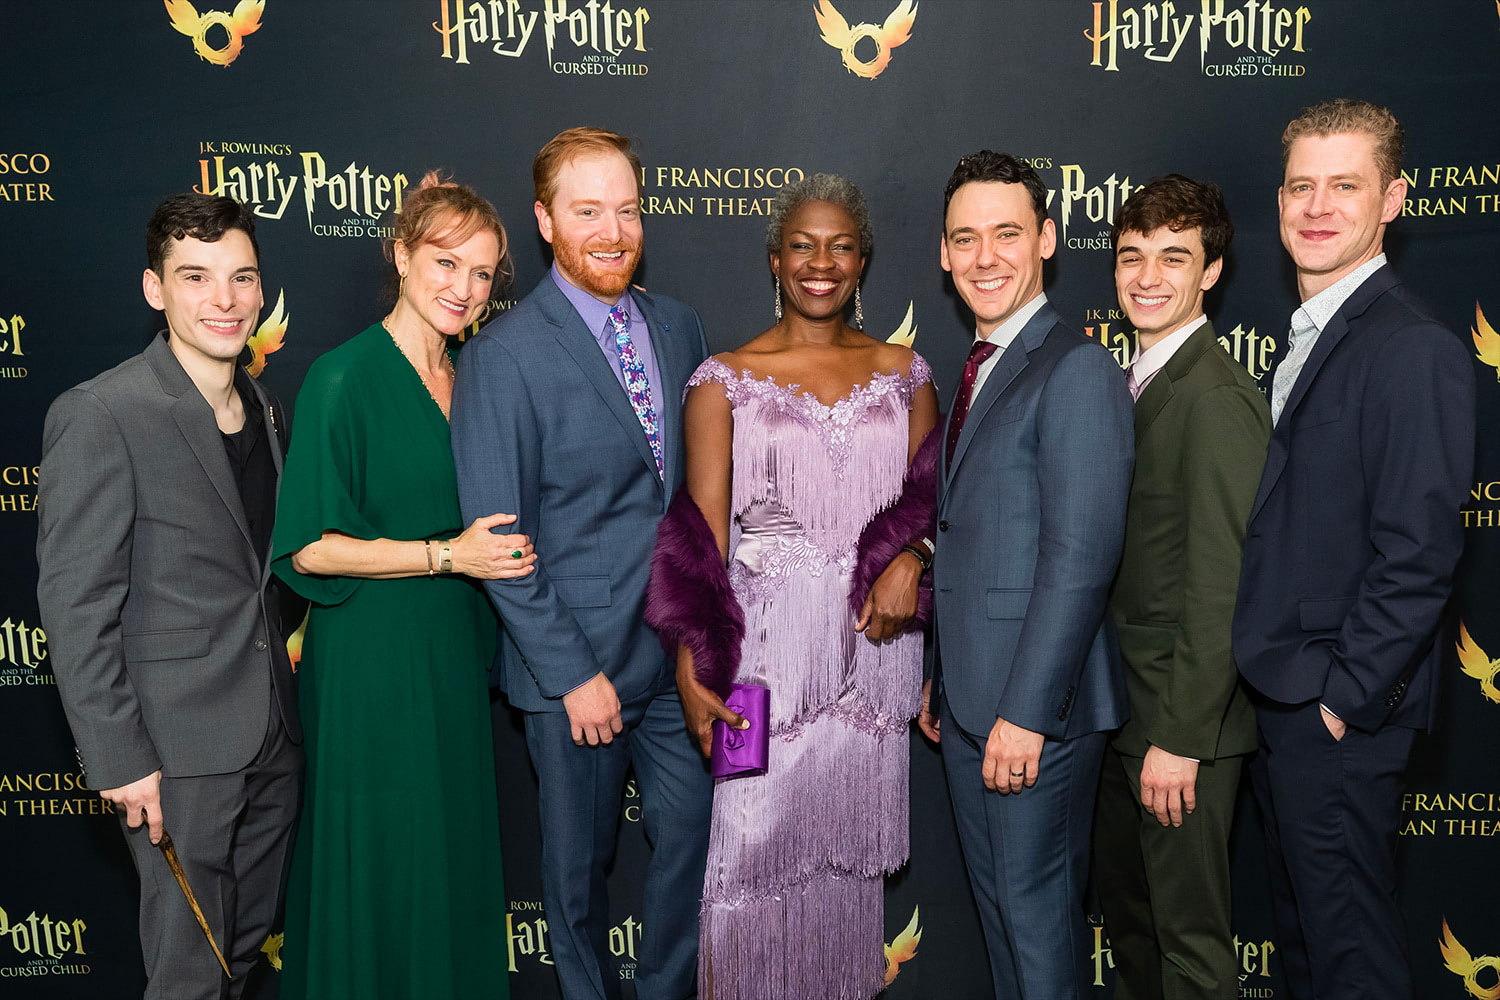 Cast walk the red carpet at the 'Cursed Child' San Francisco premiere